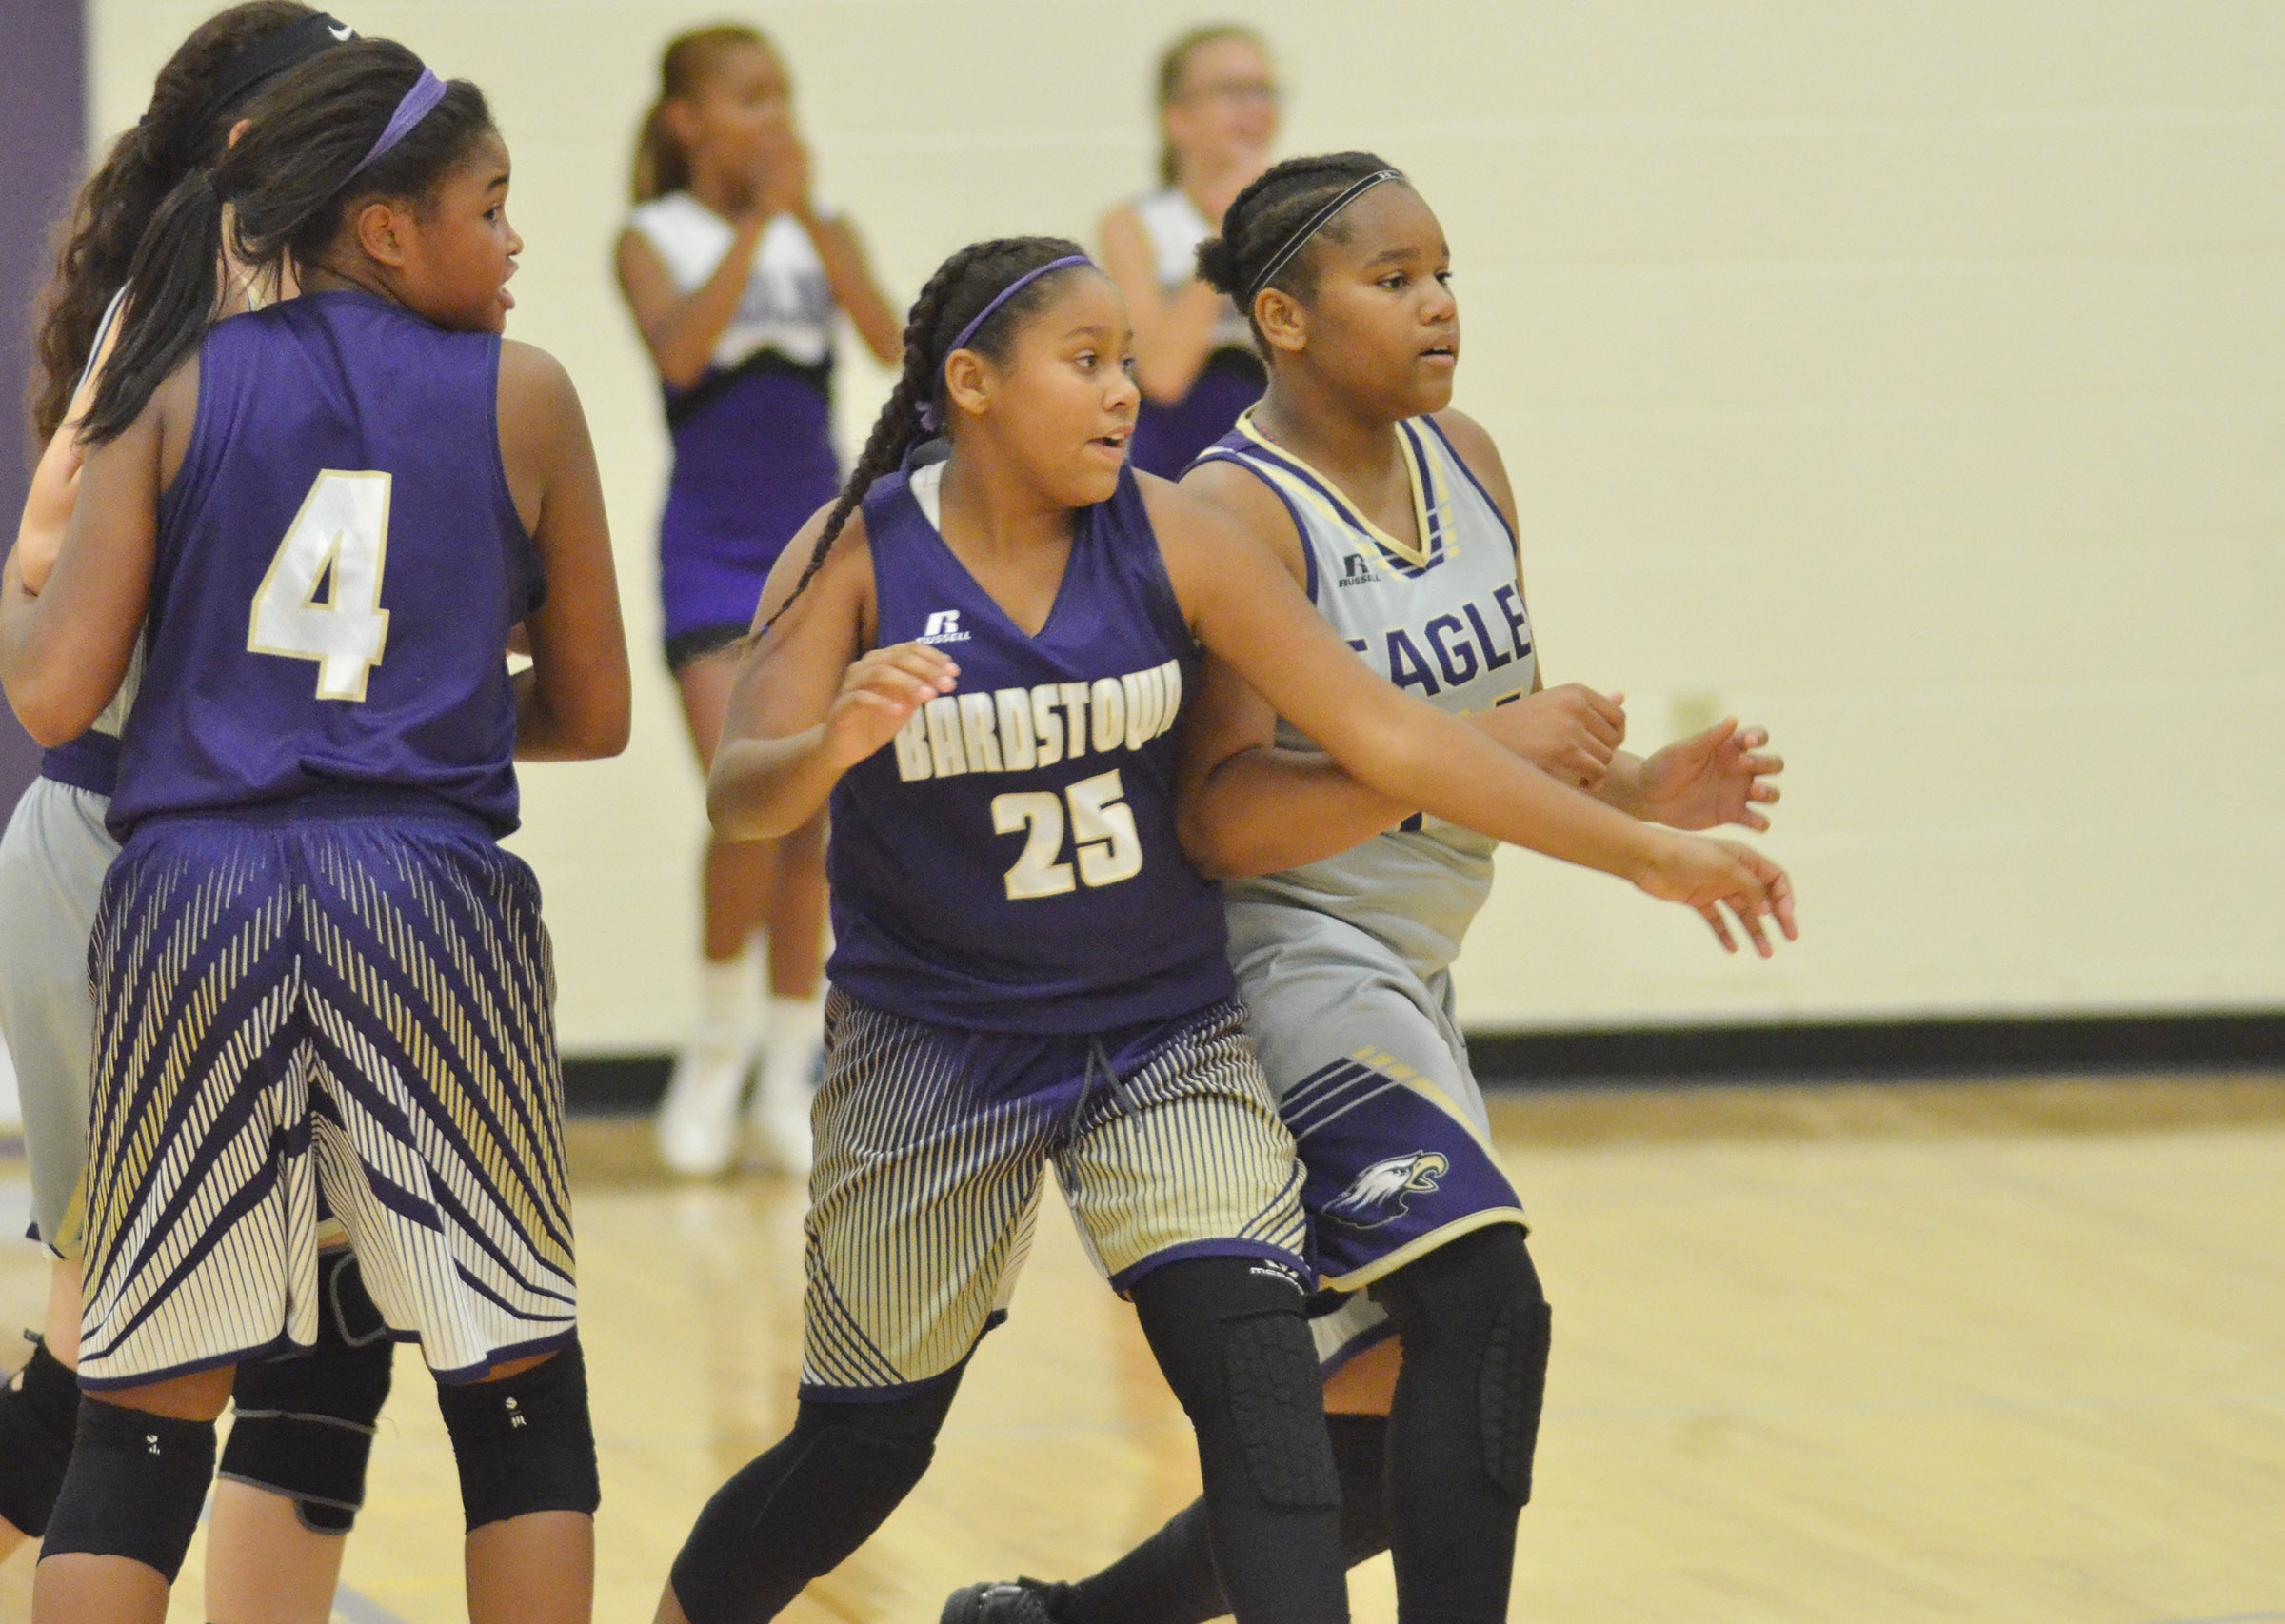 CMS seventh-grader Antaya Epps plays defense.